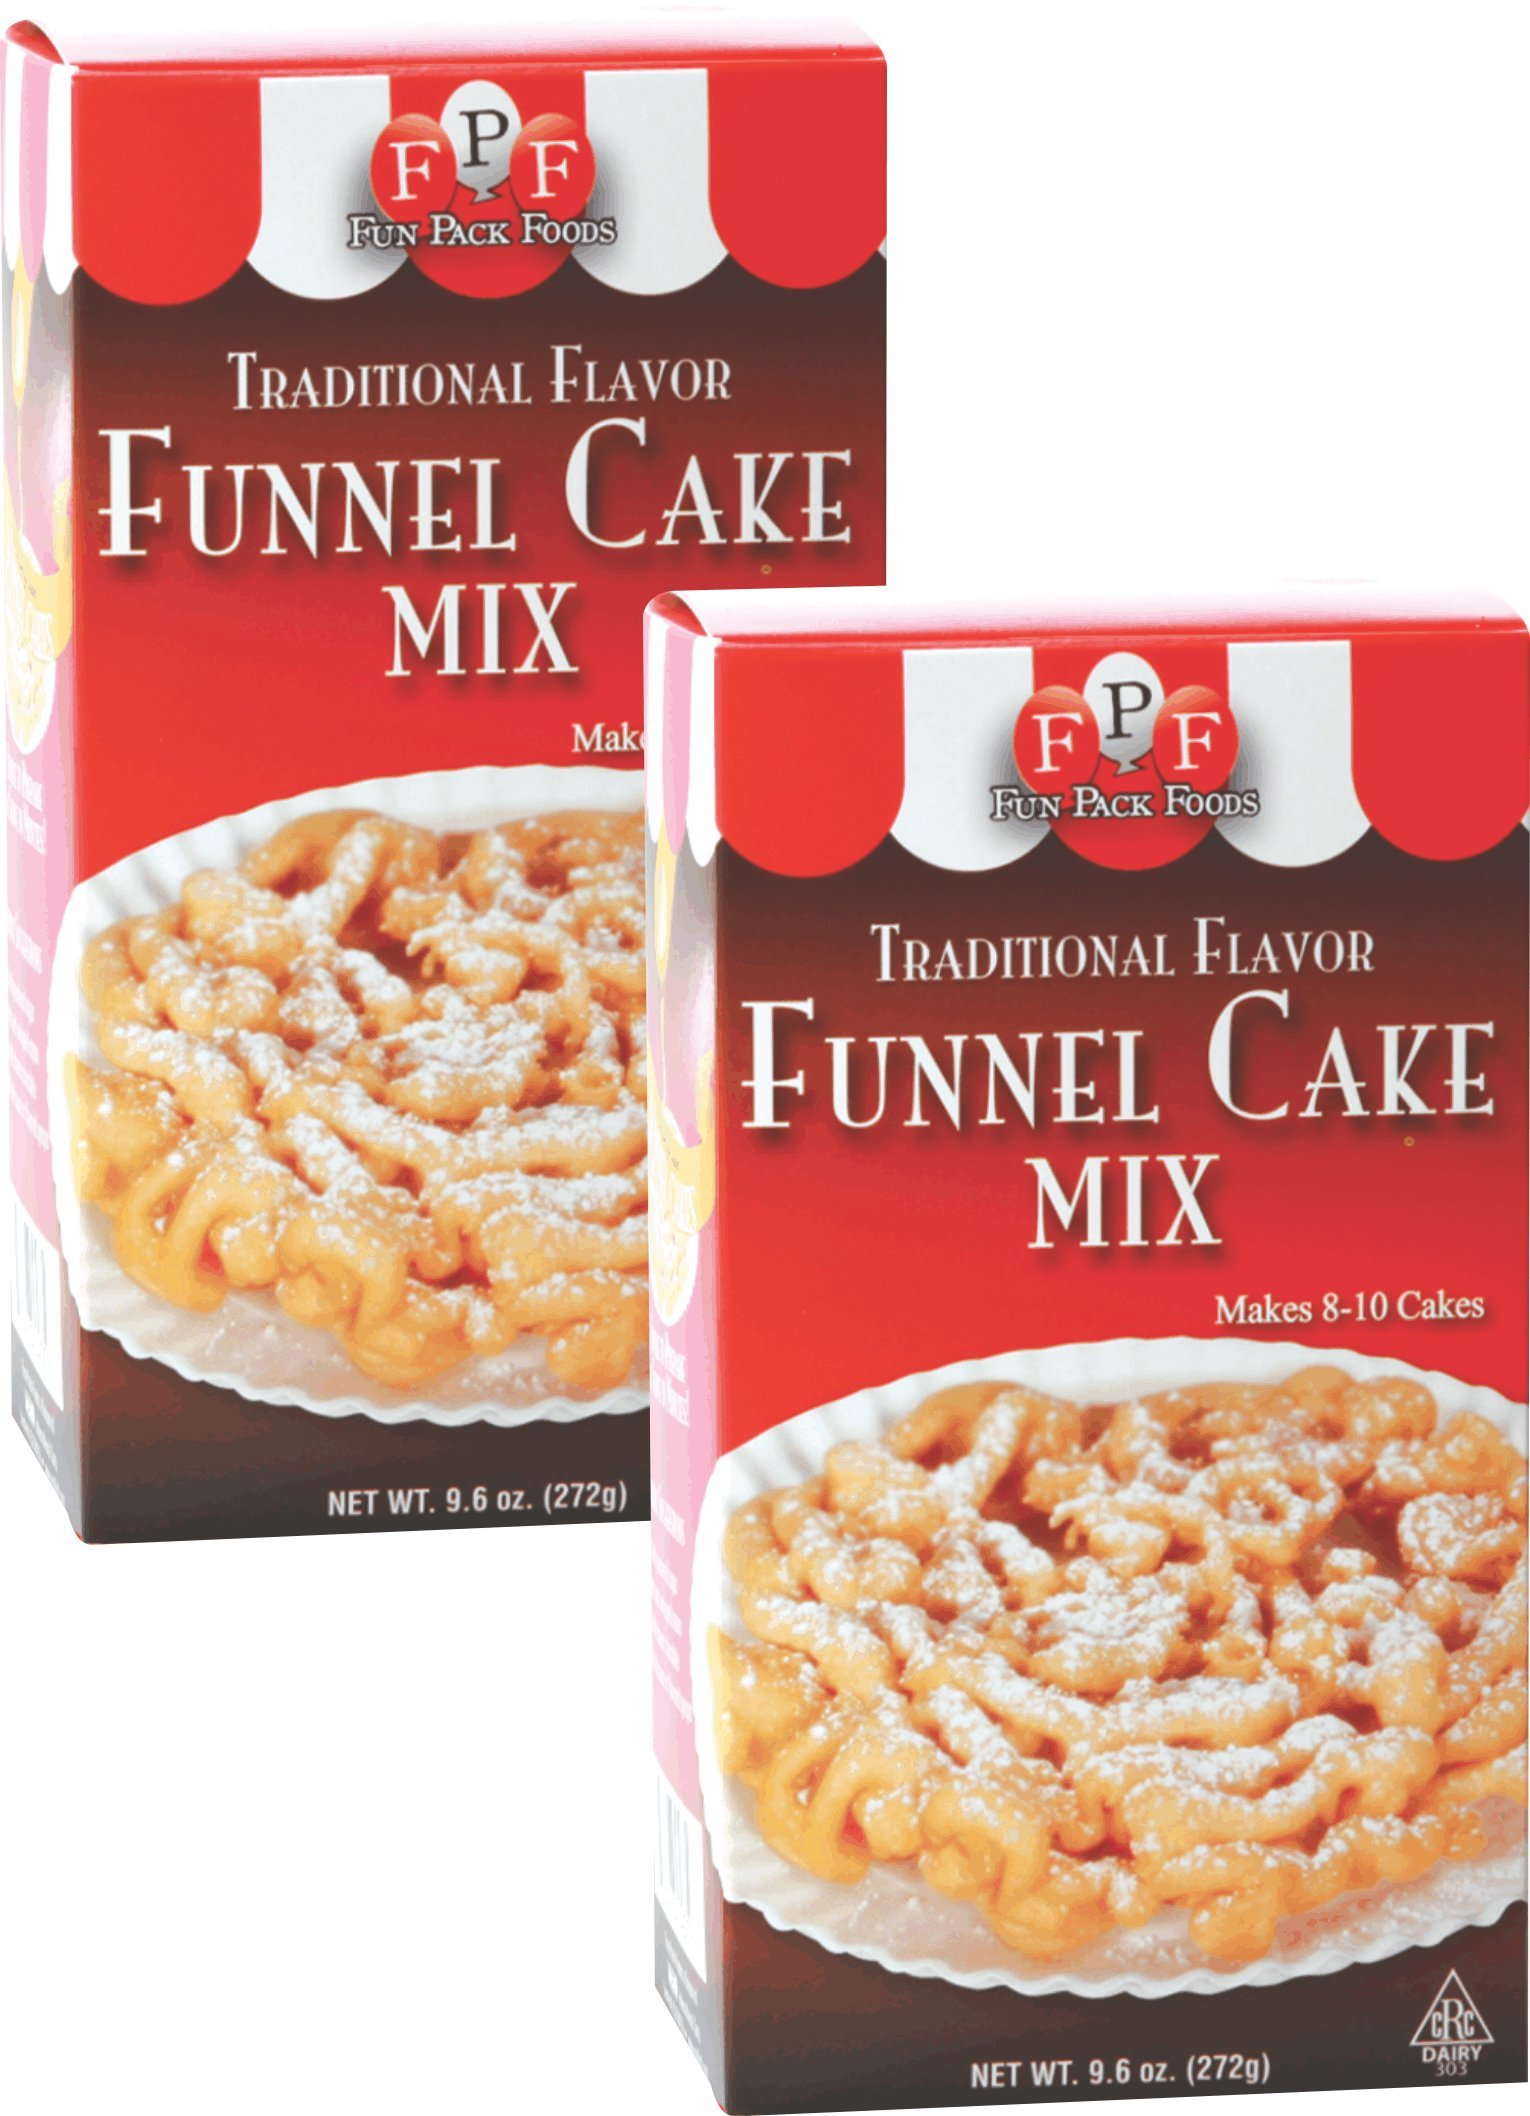 Fun Pack Foods Funnel Cake Mix (Pack of 2)